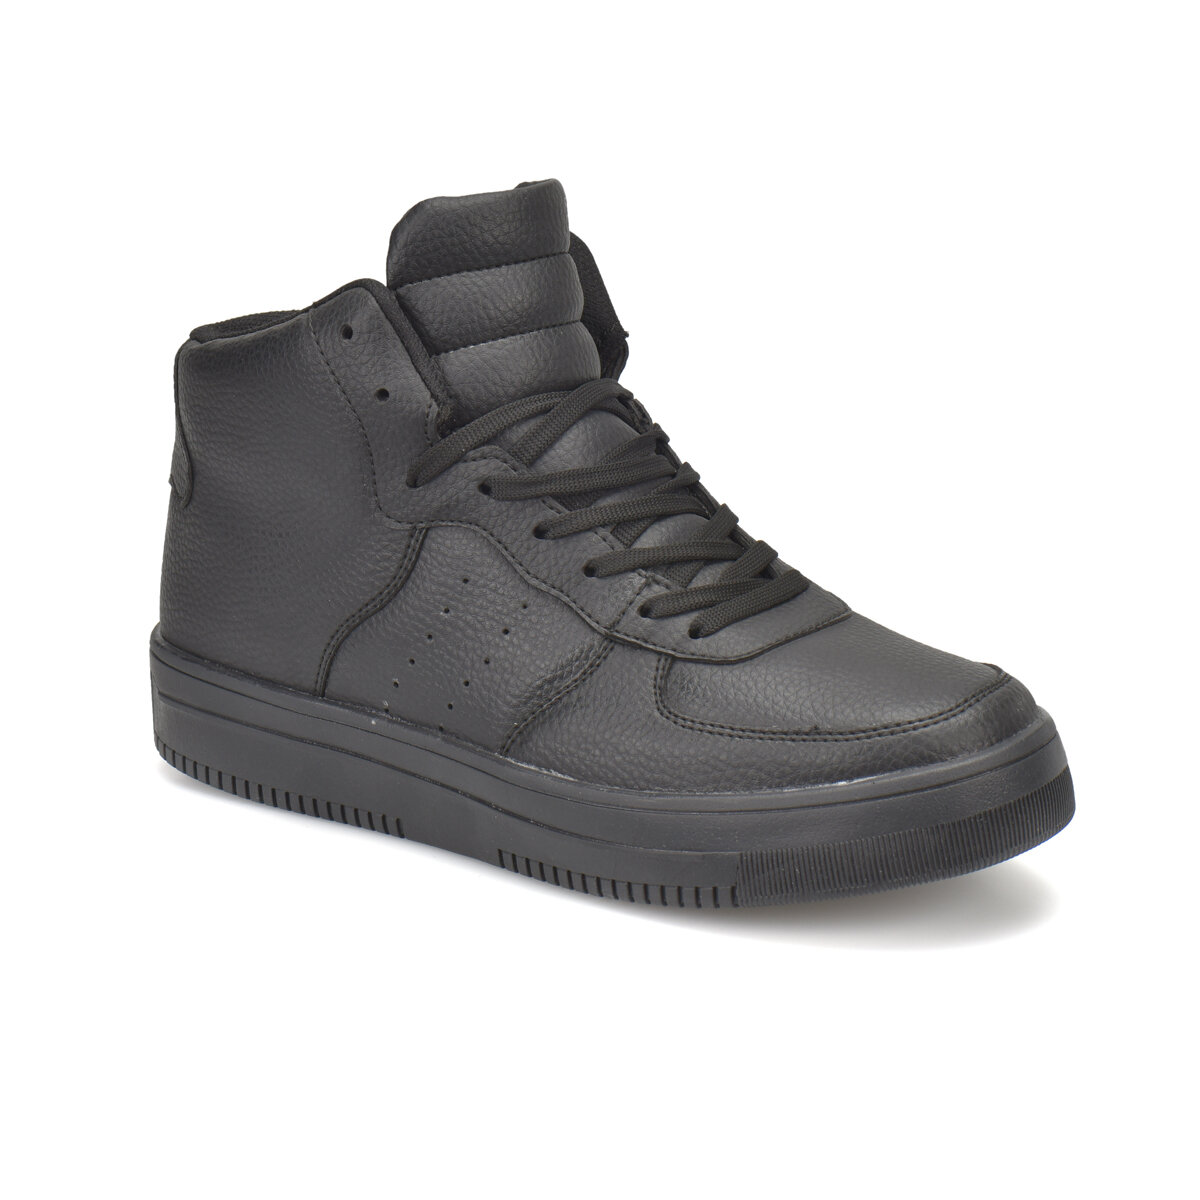 FLO JODER HI Black Men 'S Sneaker Shoes Torex